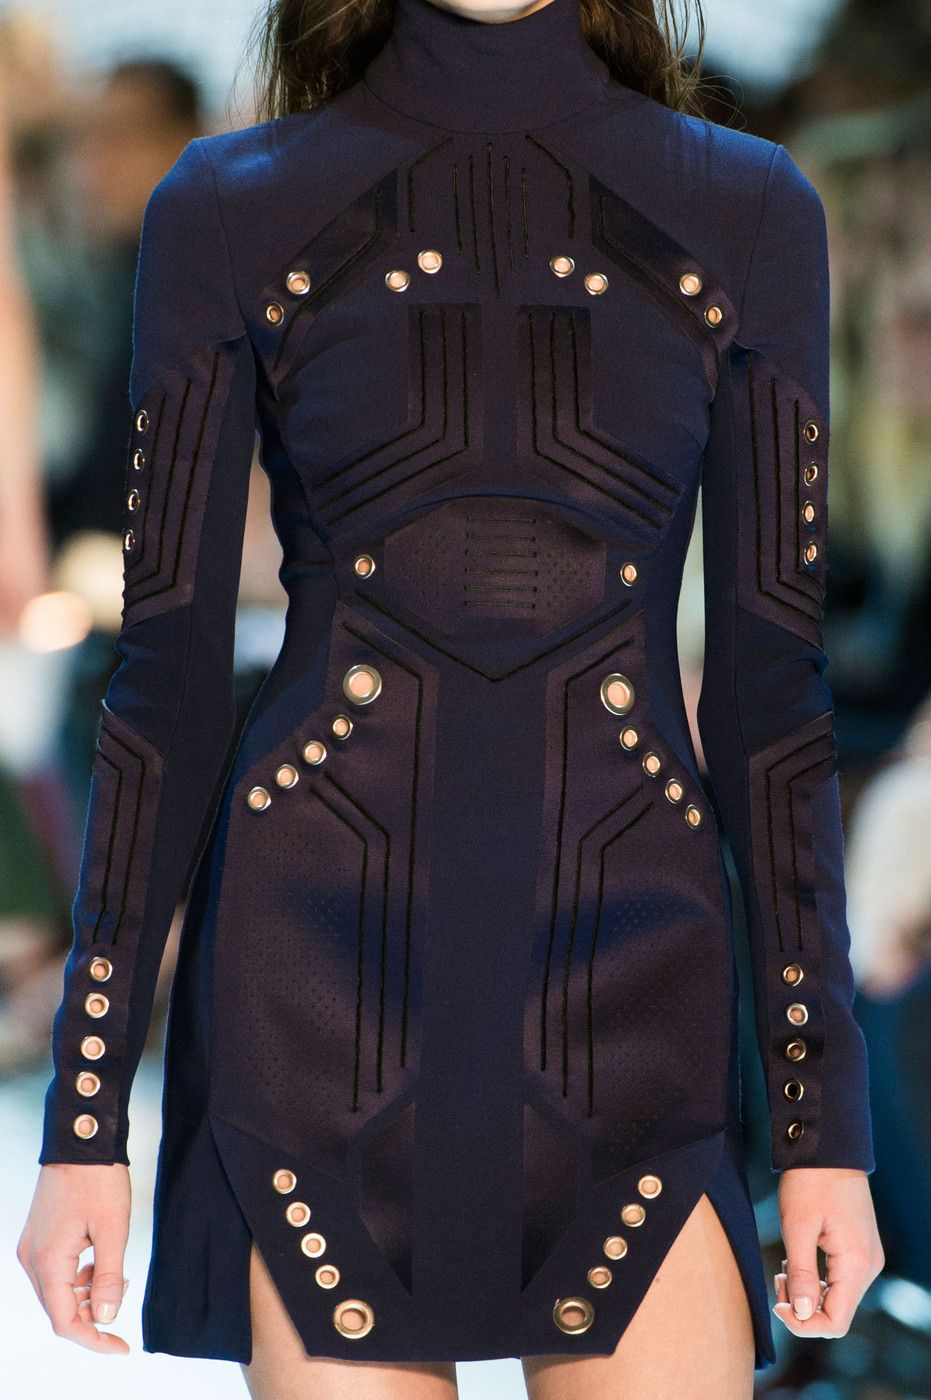 476c5ff6800 Thierry Mugler at Paris Fashion Week Fall 2015   In the details ...